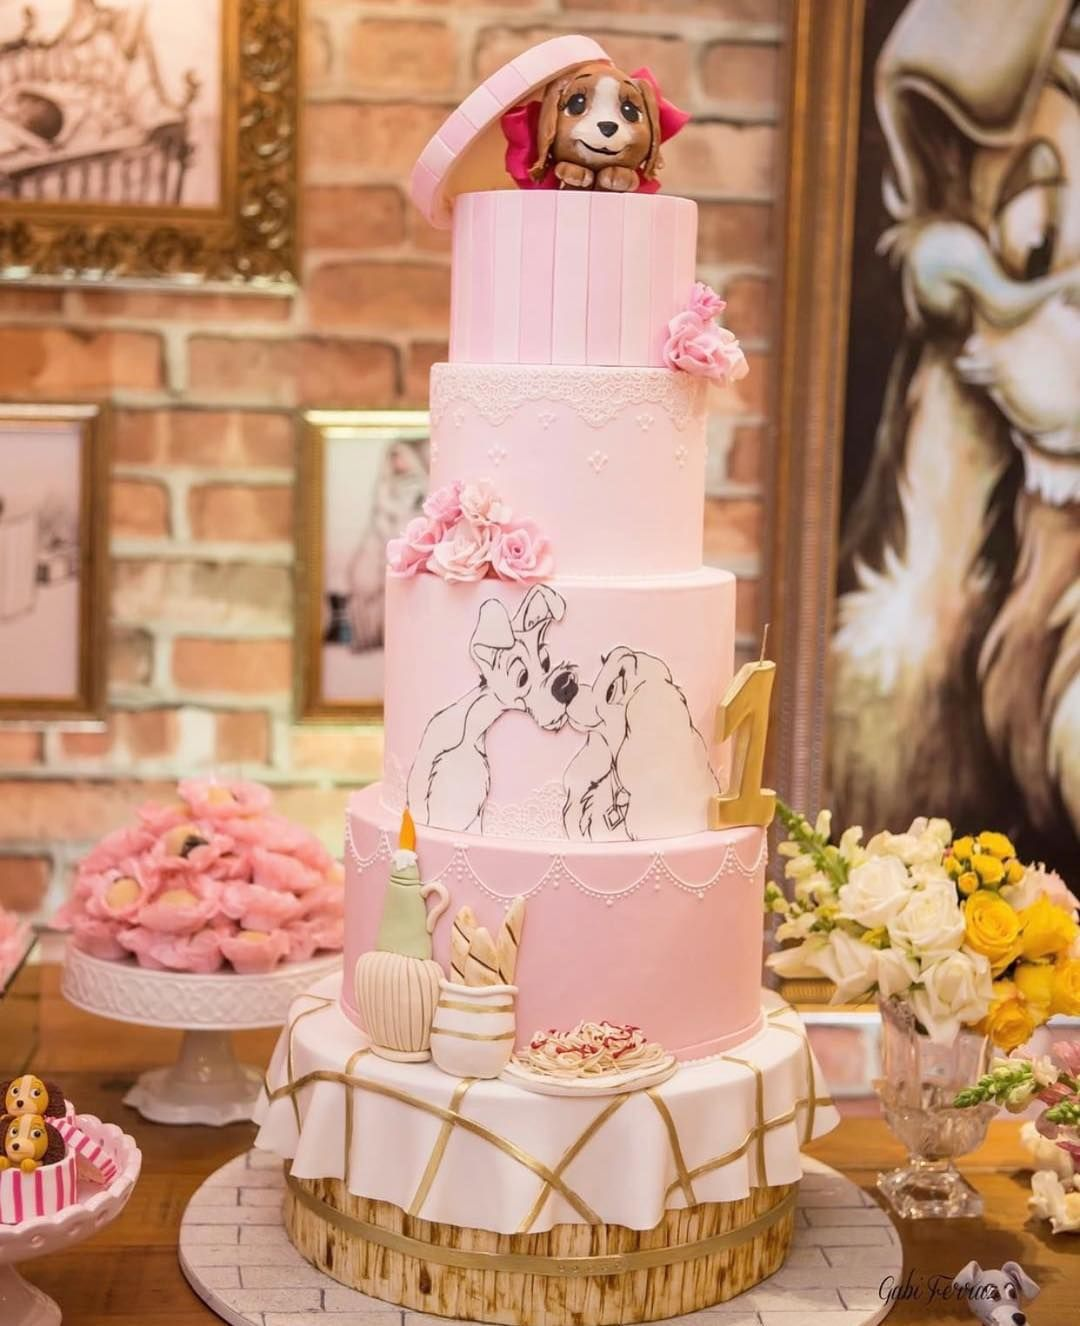 Lady The Tramp Cake Disney Cakes Fantasy Cake Lady And The Tramp